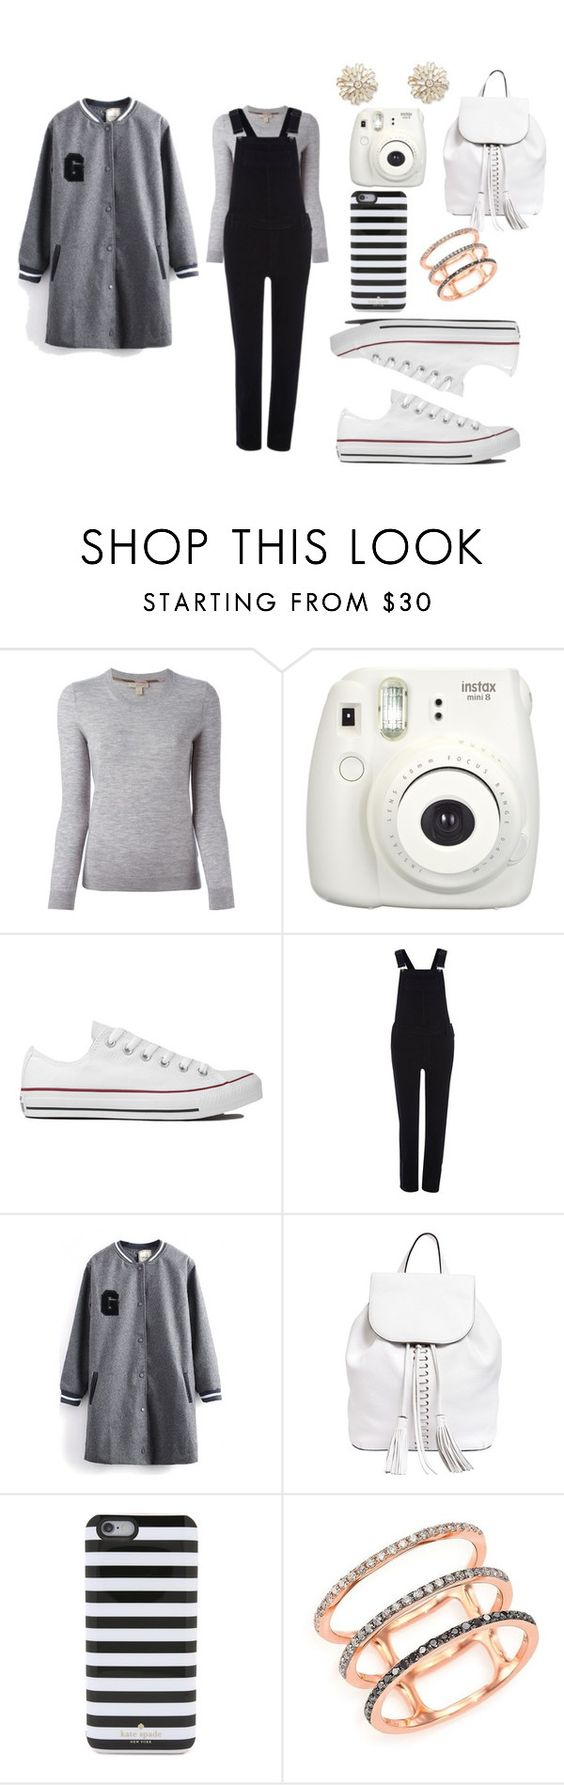 """""""#221"""" by jel1ica ❤ liked on Polyvore featuring Burberry, Converse, River Island, Rebecca Minkoff, Kate Spade, EF Collection, Sole Society, women's clothing, women's fashion and women"""